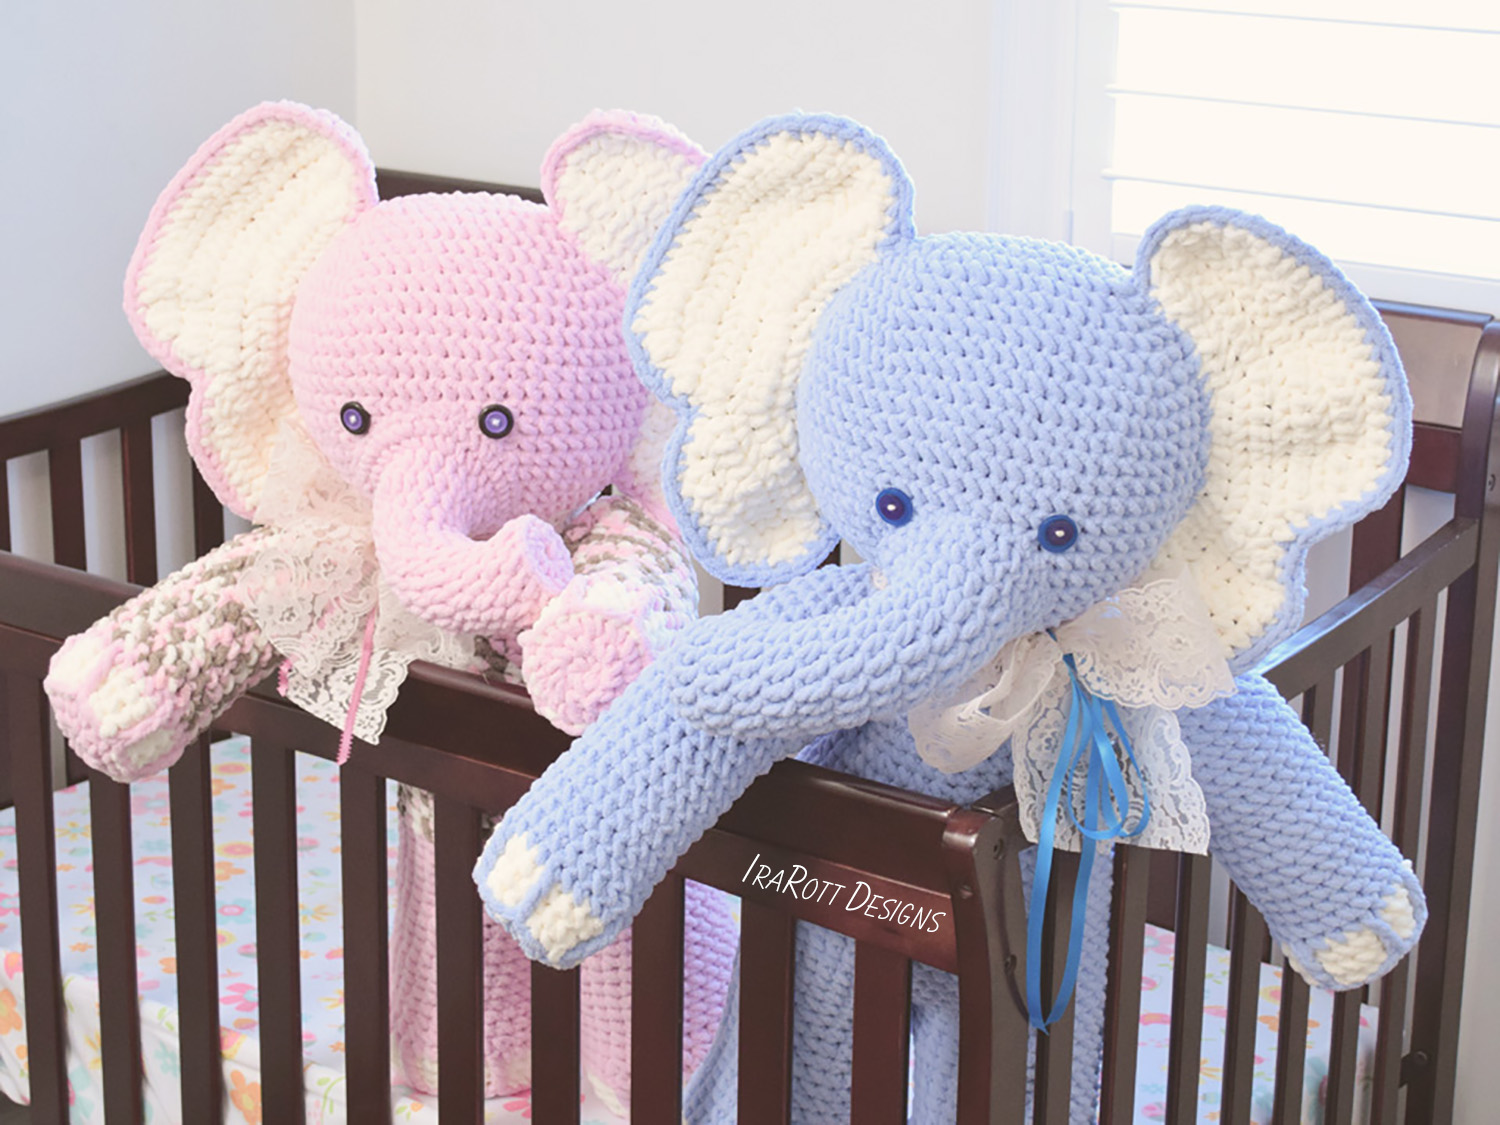 Amigurumi Elephant Pattern : Josefina and jeffery big amigurumi elephants pdf crochet pattern